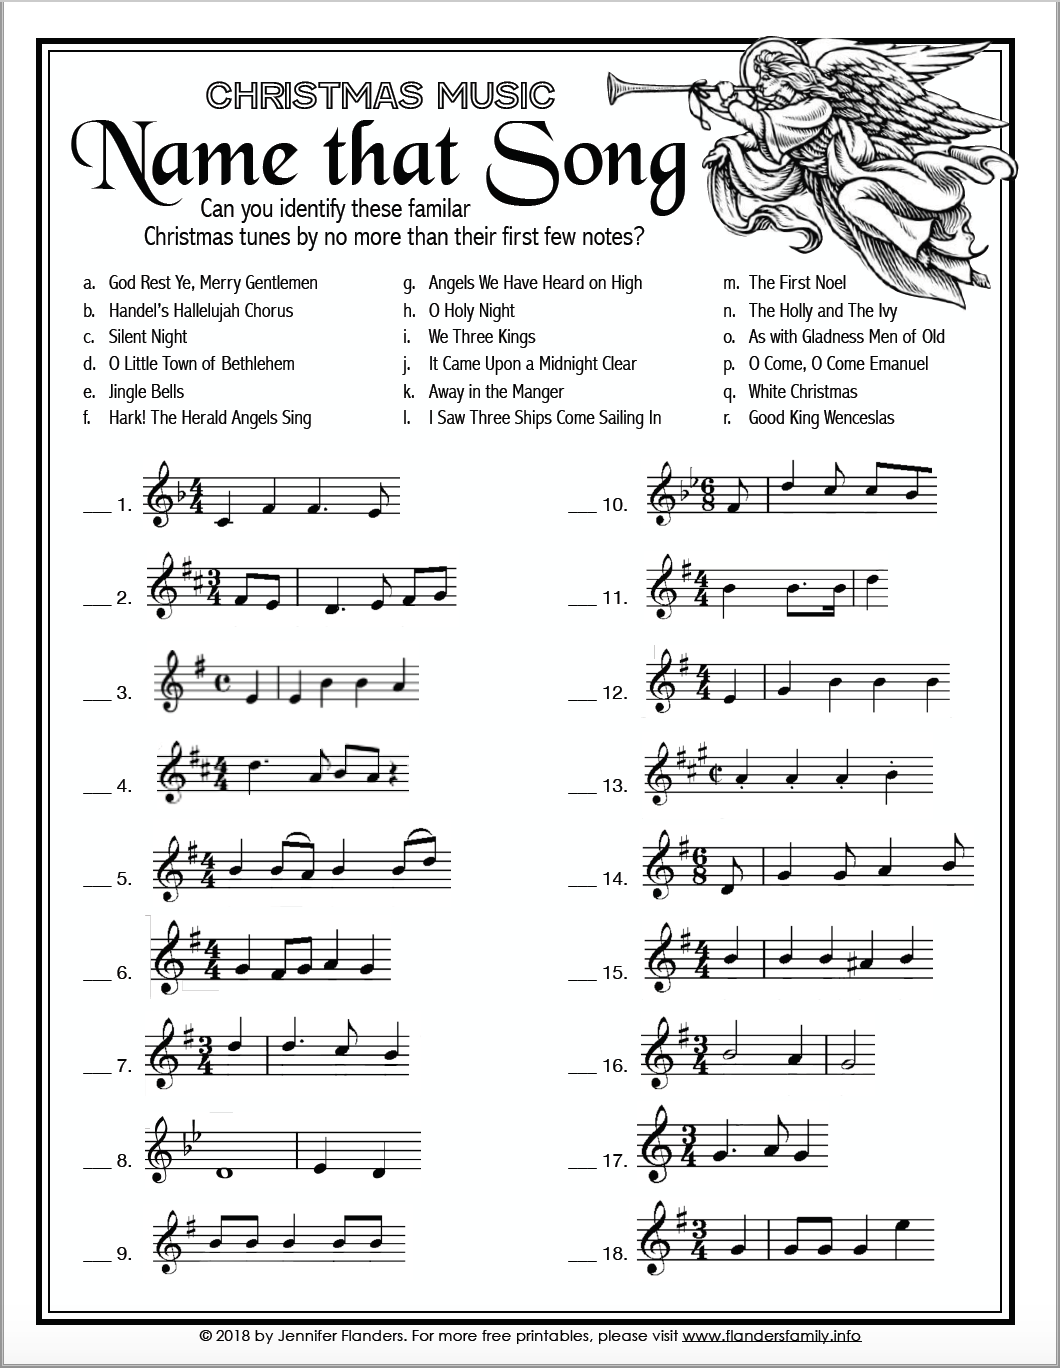 Handy image for christmas song quiz printable